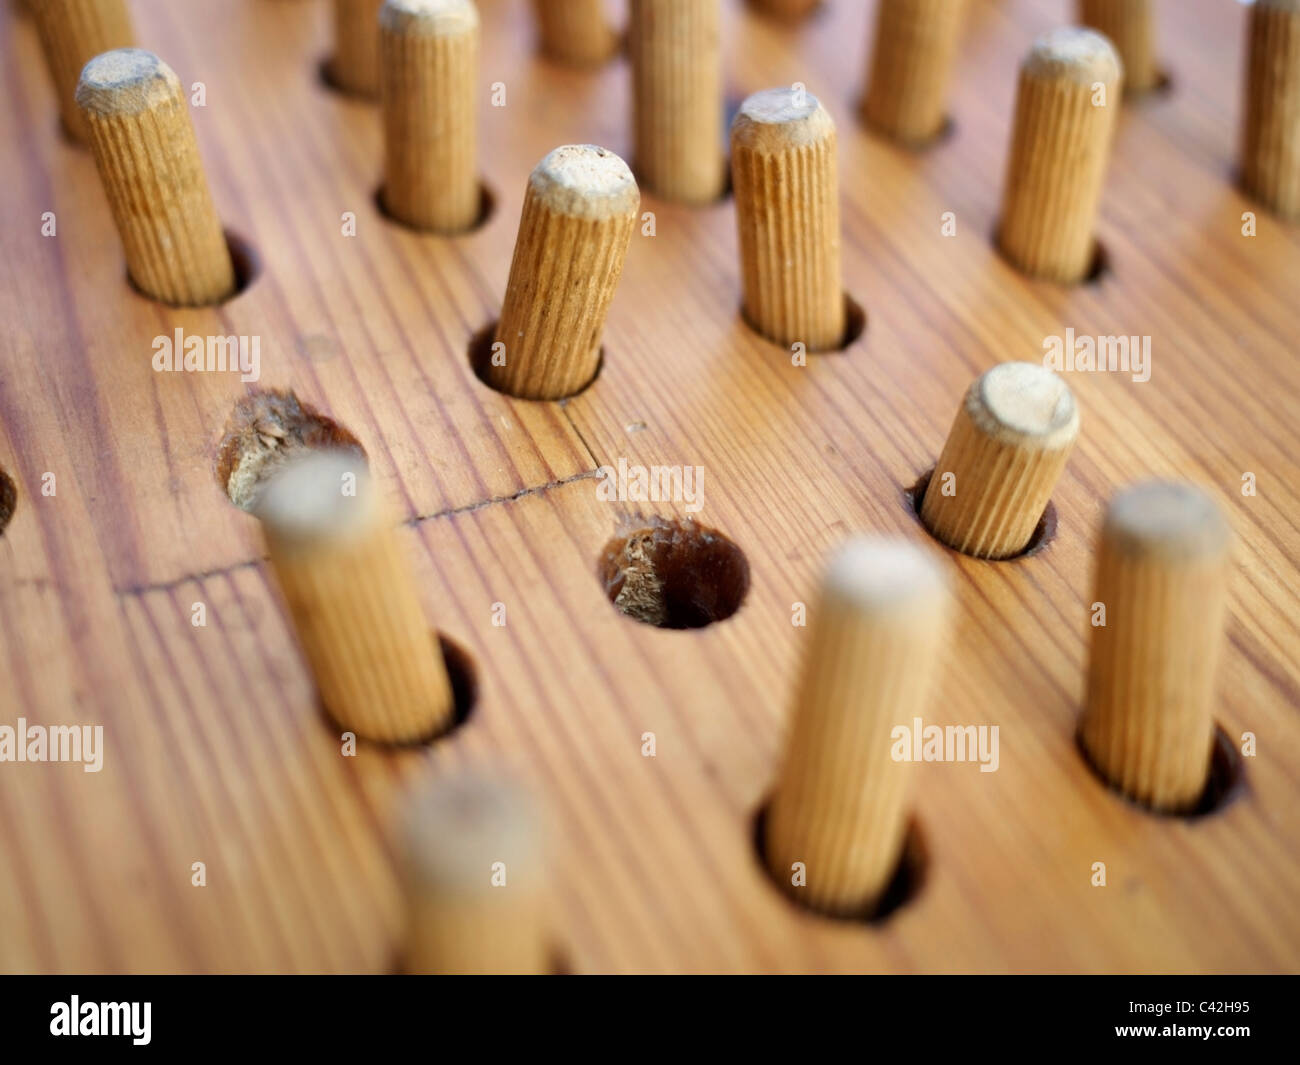 Peg Solitaire game - Stock Image